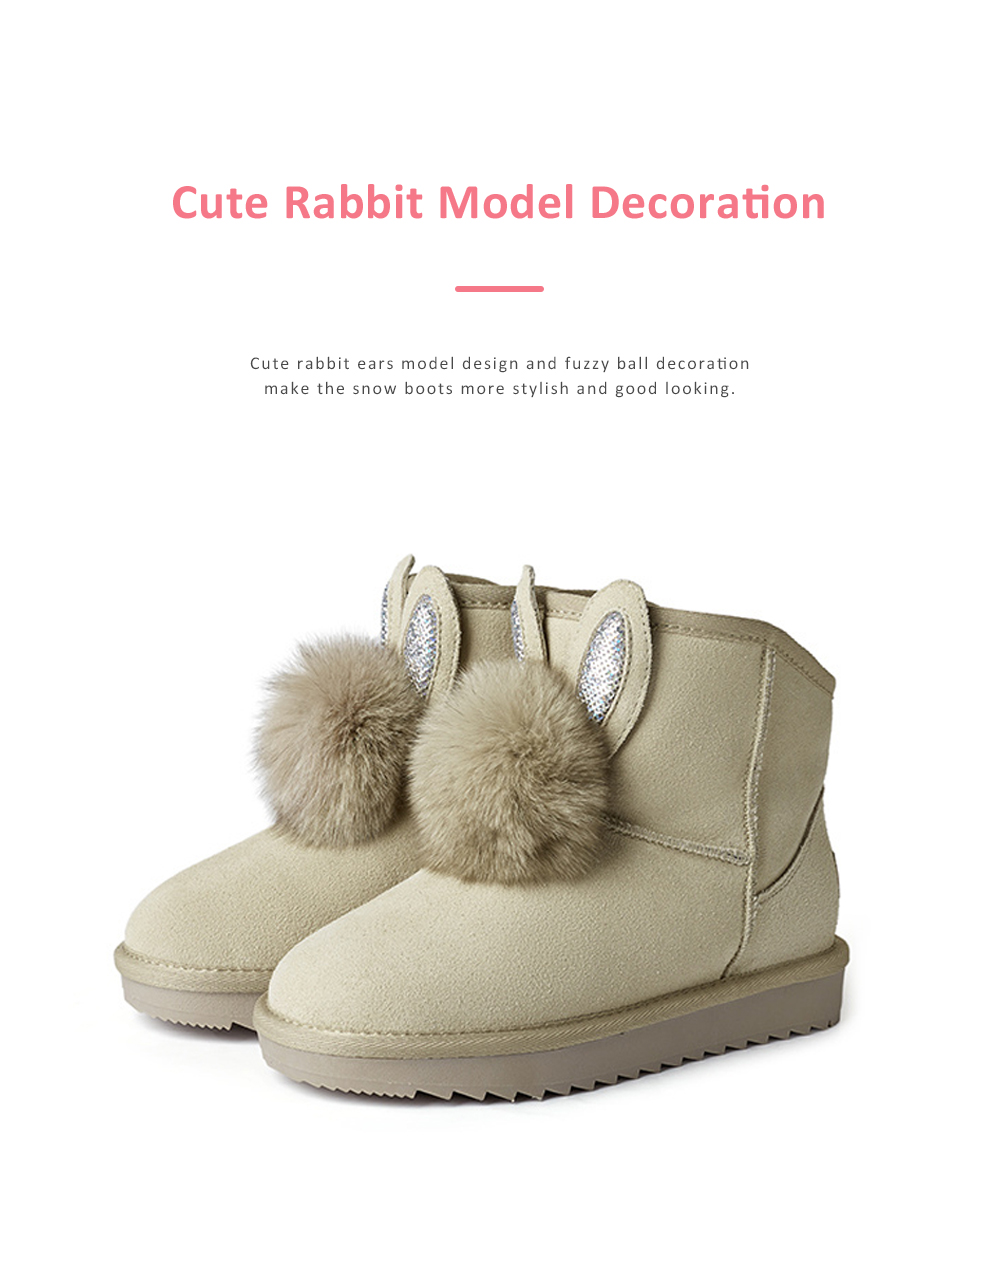 Warm Winter Autumn Cute Fluffy Rabbit Ears Model Decorative Anti-skid Girl Snow Boots with Fuzzy Ball Decoration 1